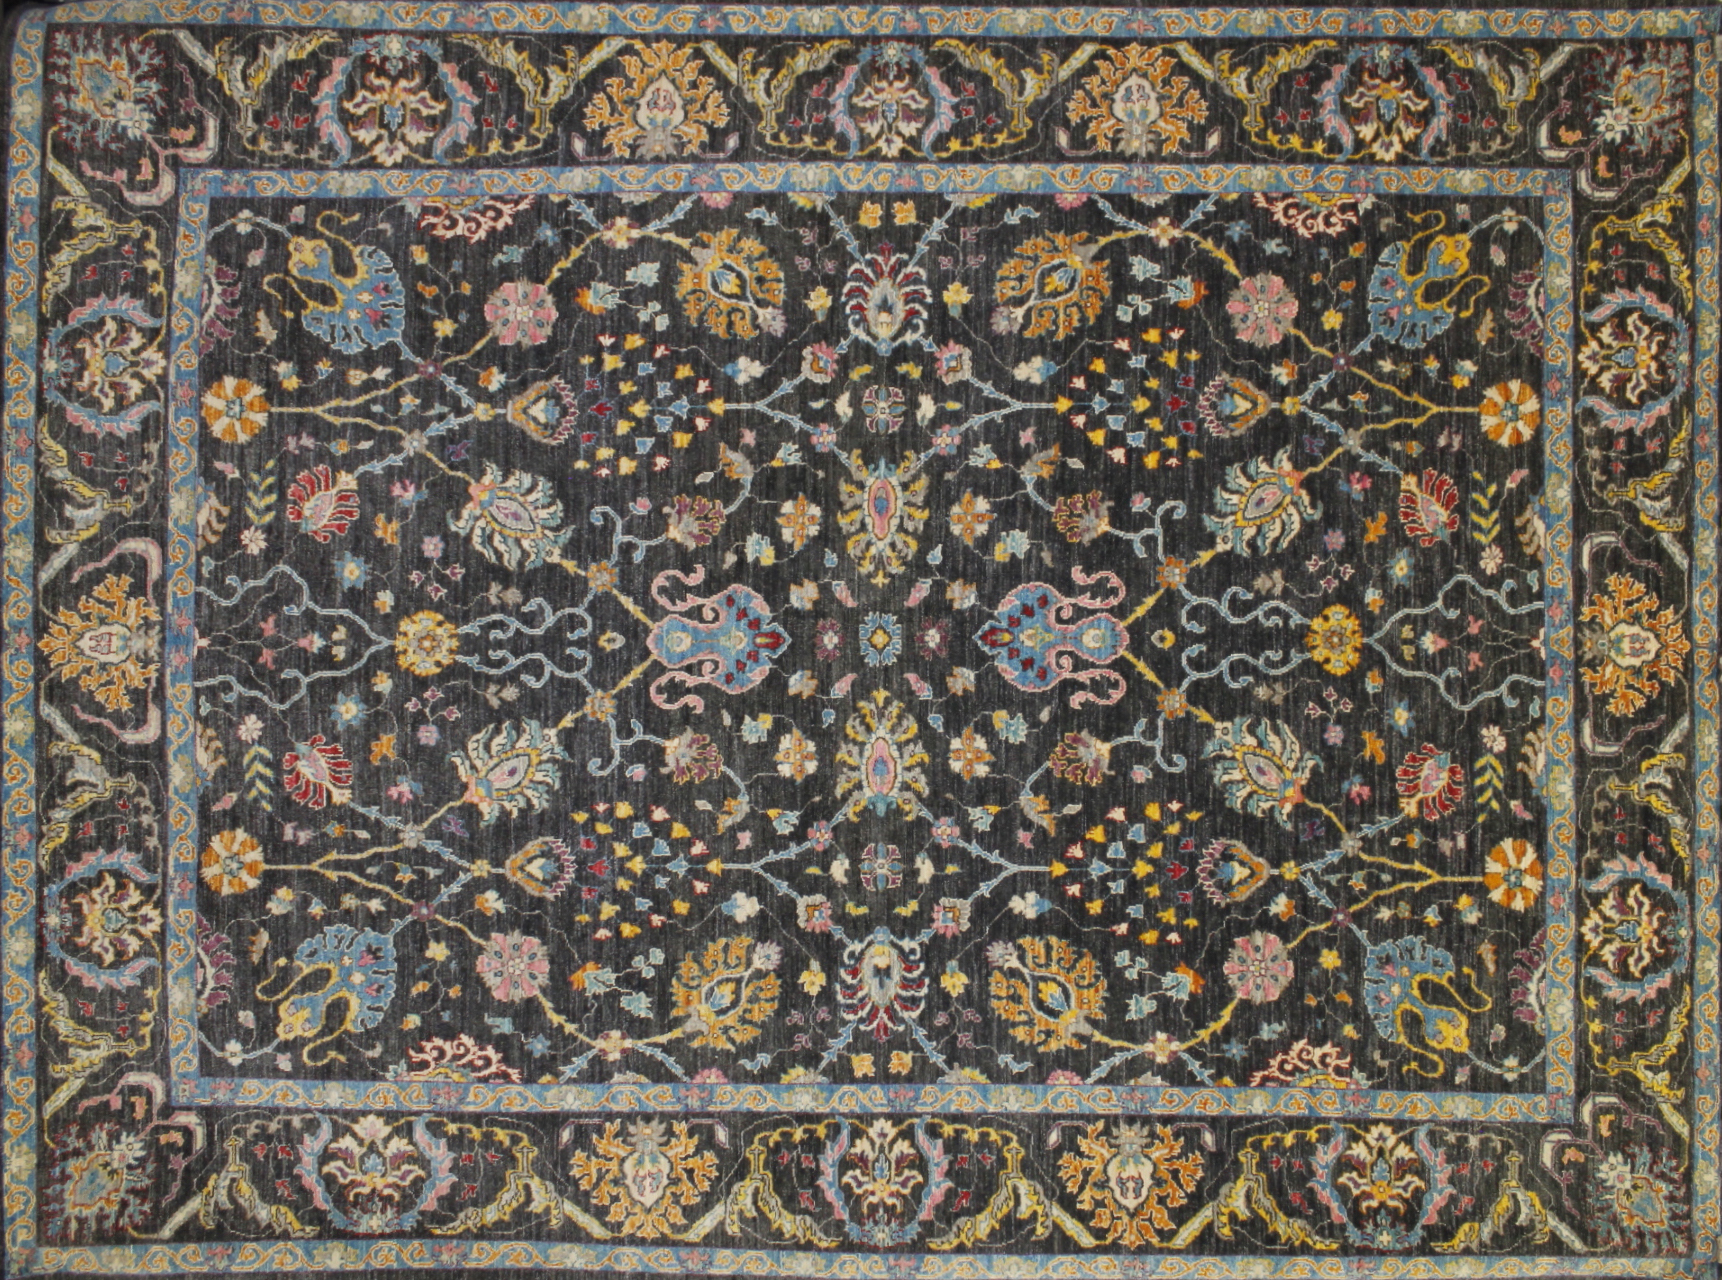 9x12 Modern Hand Knotted Wool Area Rug - MR022564